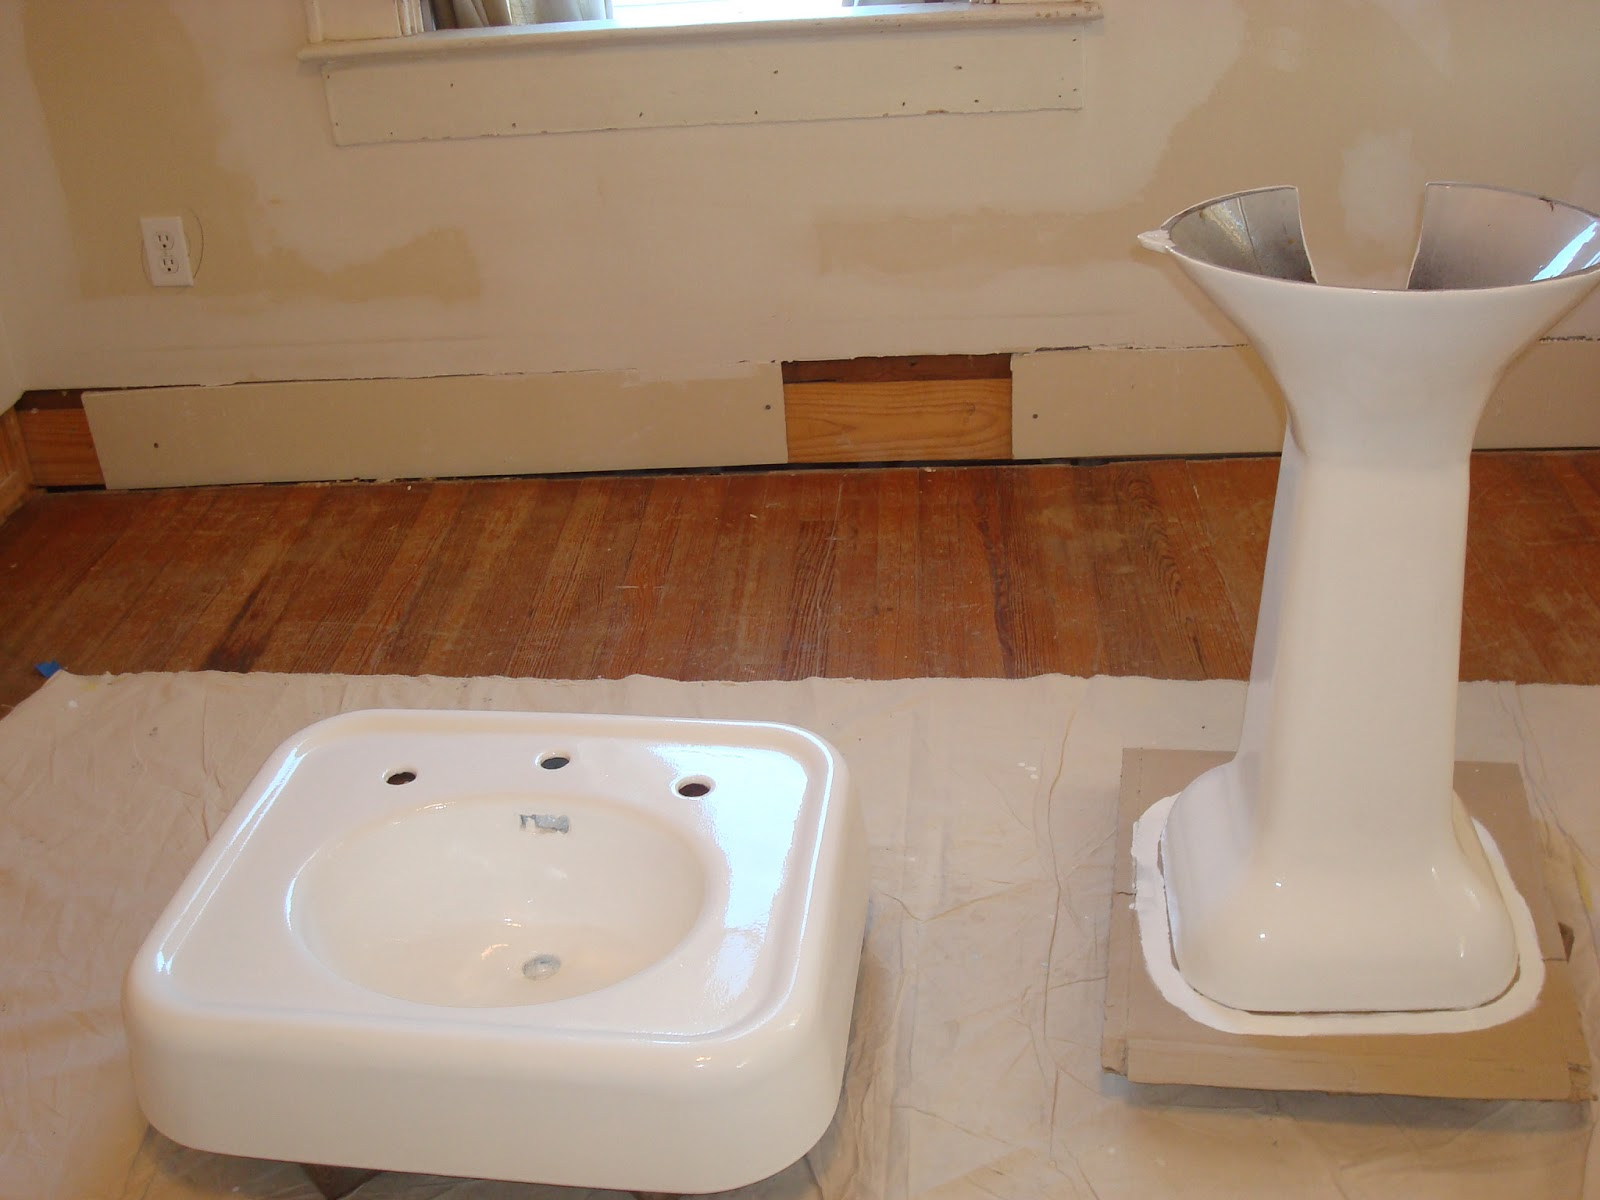 How To Refinish Kitchen Sink What Color Cabinets For A Small 1800 39s House Renovations Refinishing Cast Iron Pedestal